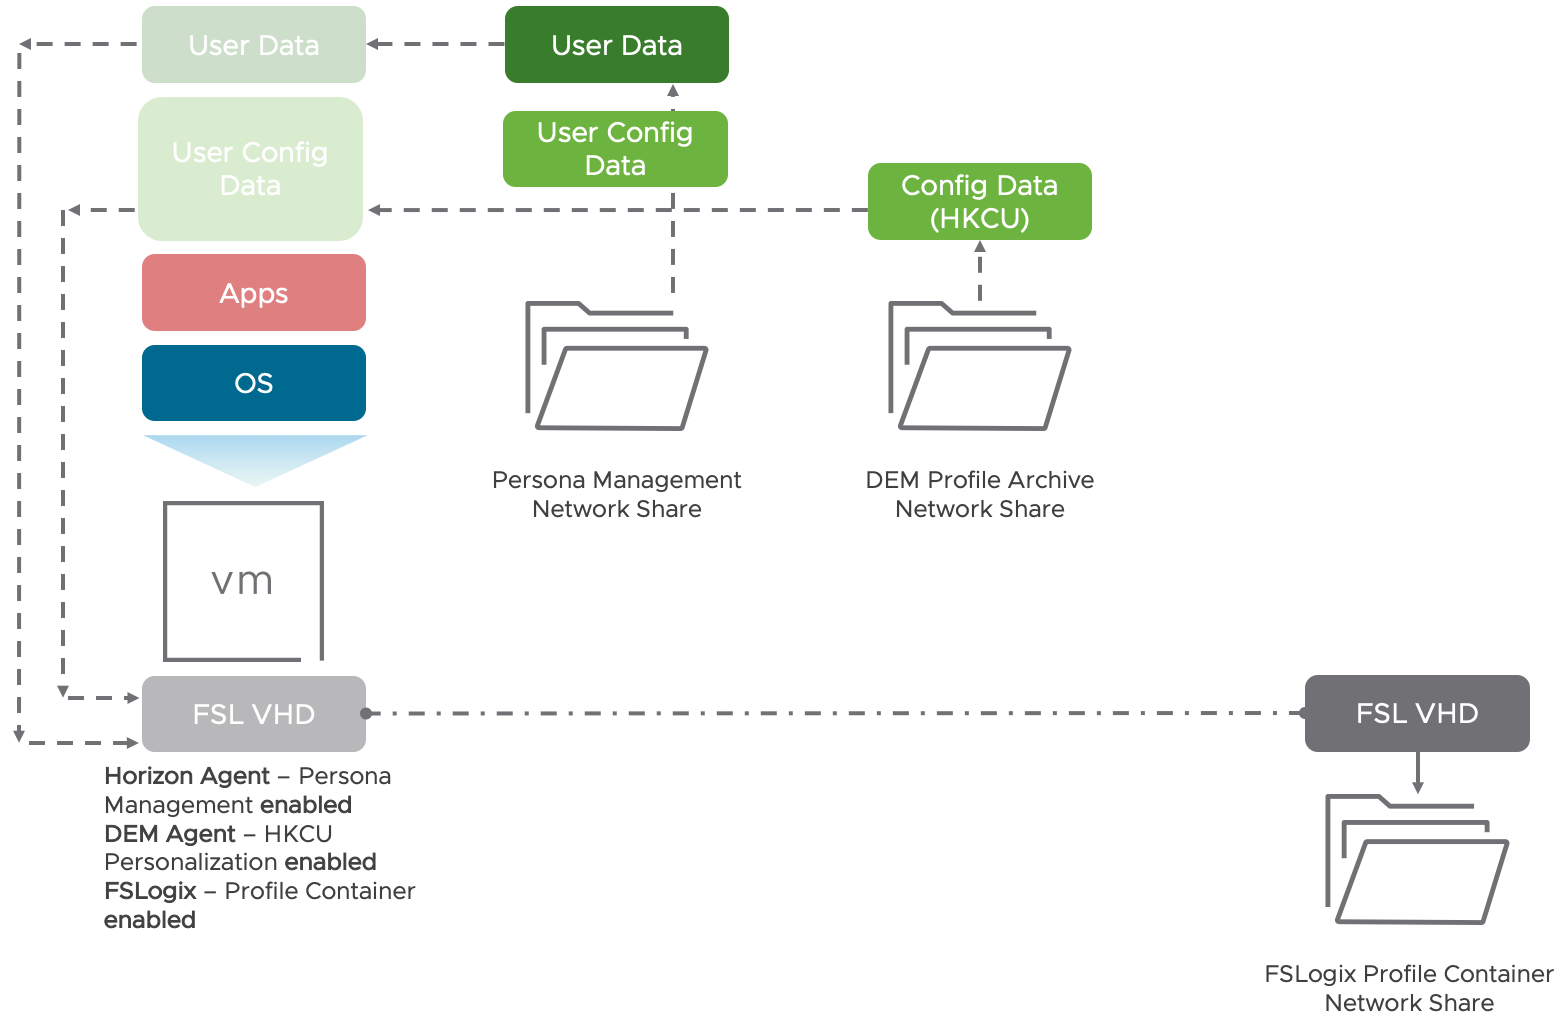 Persona Management and DEM Sync Data to FSLogix Profile Container